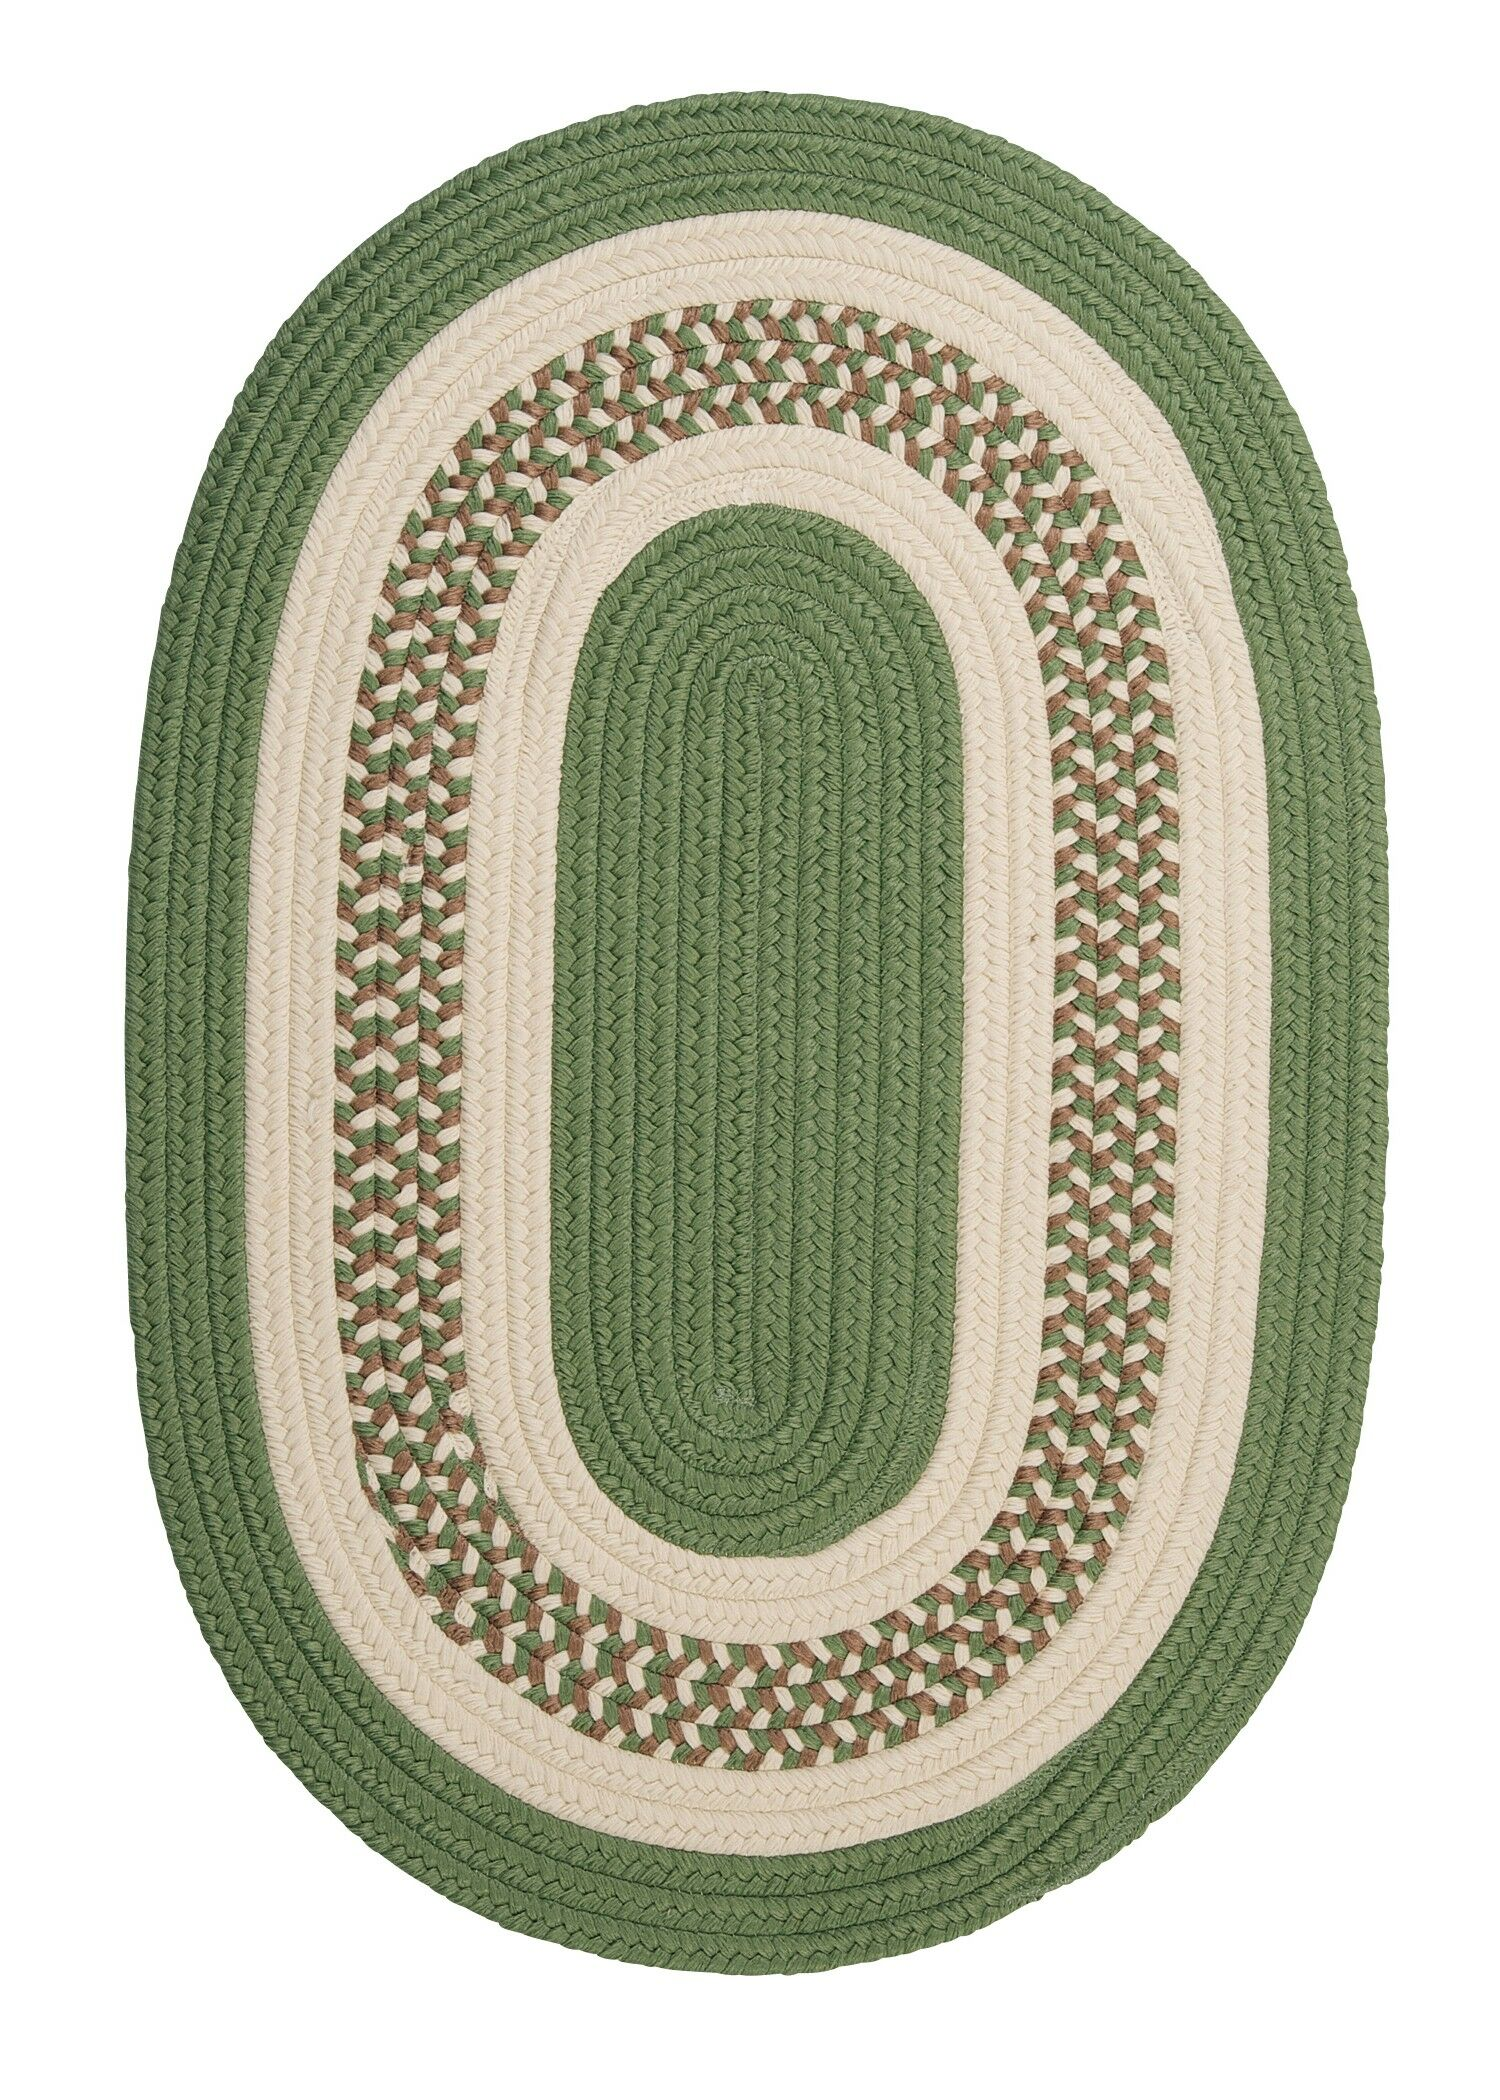 Rockport Moss Green Indoor/Outdoor Rug Rug Size: Round 4'